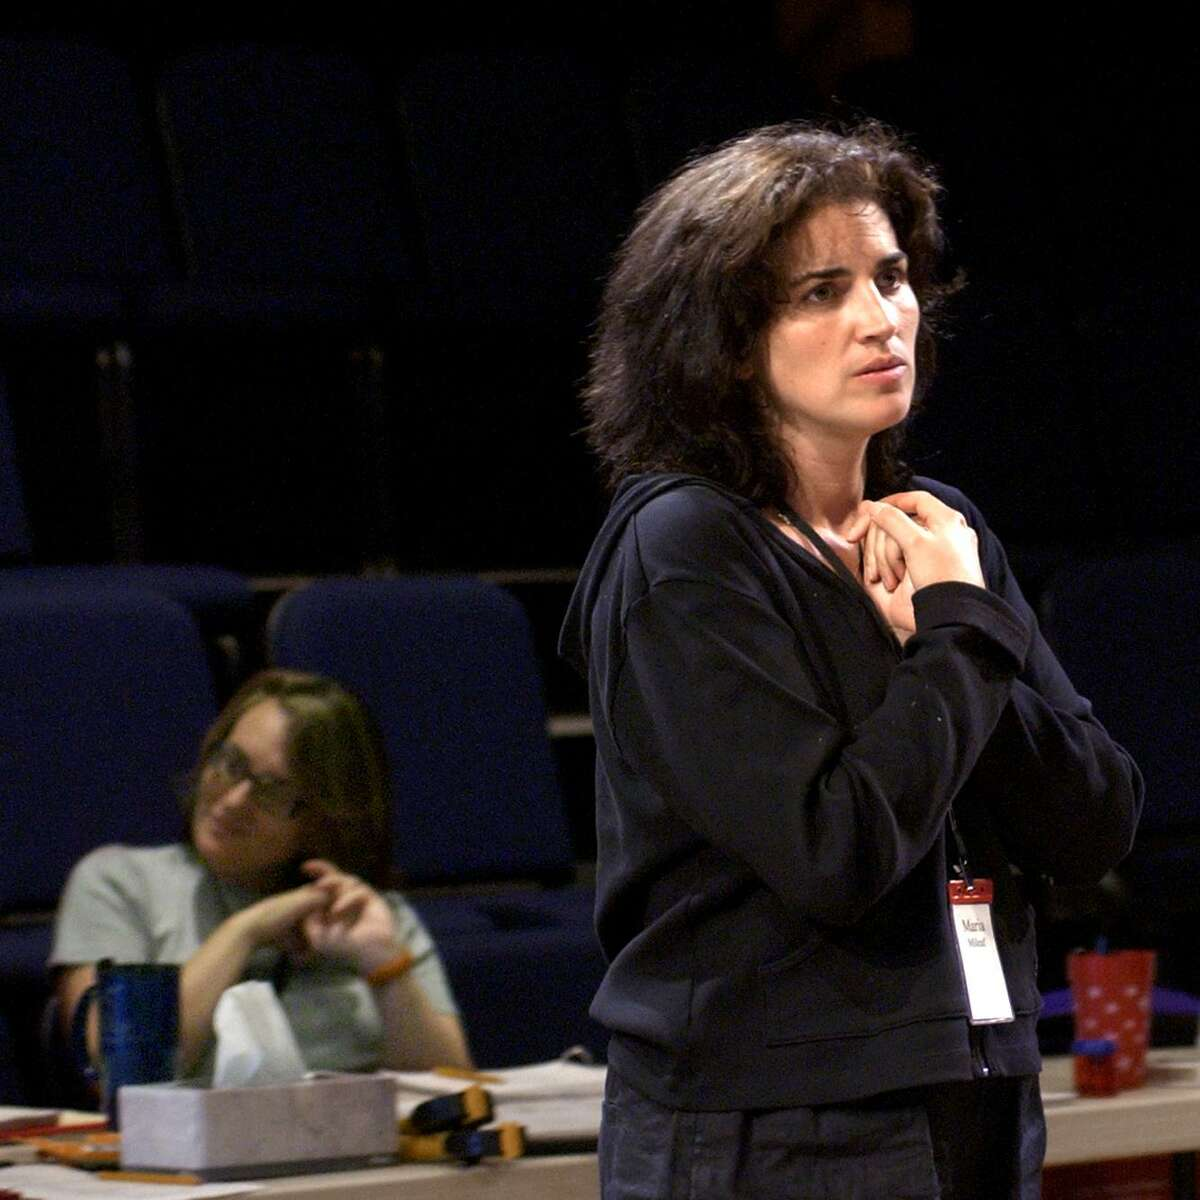 Director, Maria Mileaf (right) and playwright Susan Bernfield (left) during rehersal for